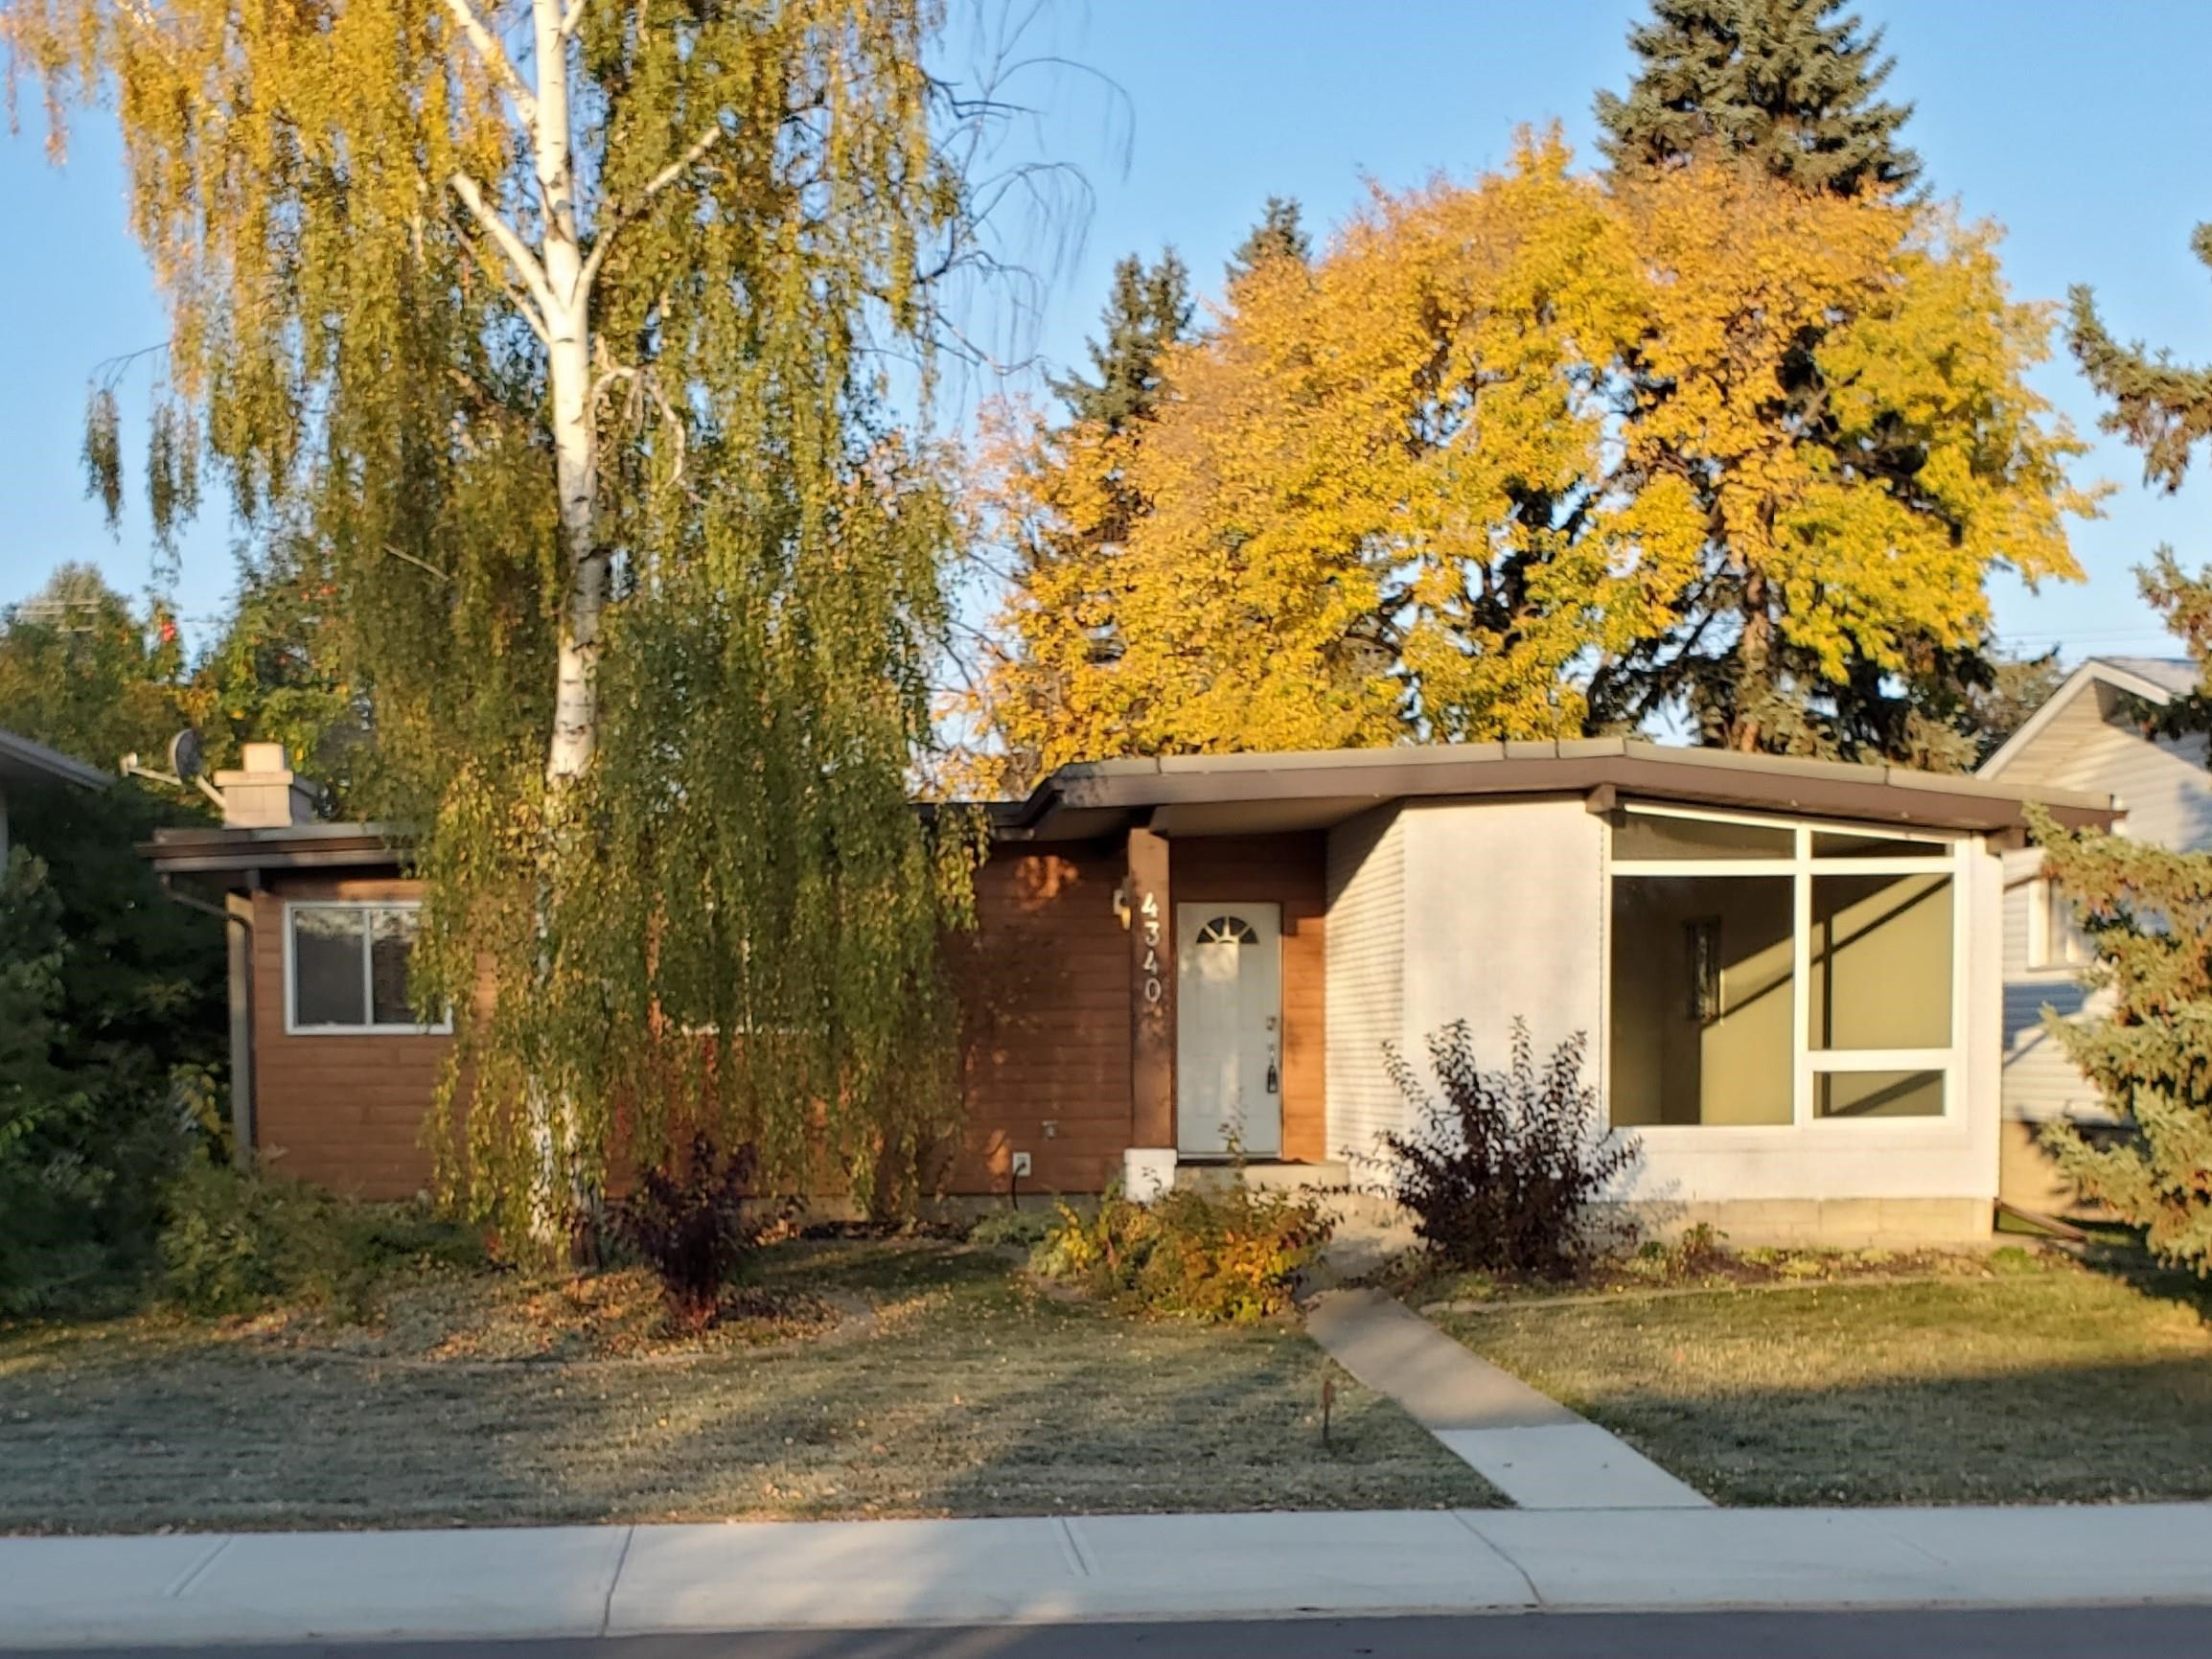 Main Photo: 4340 114A Street in Edmonton: Zone 16 House for sale : MLS®# E4263419